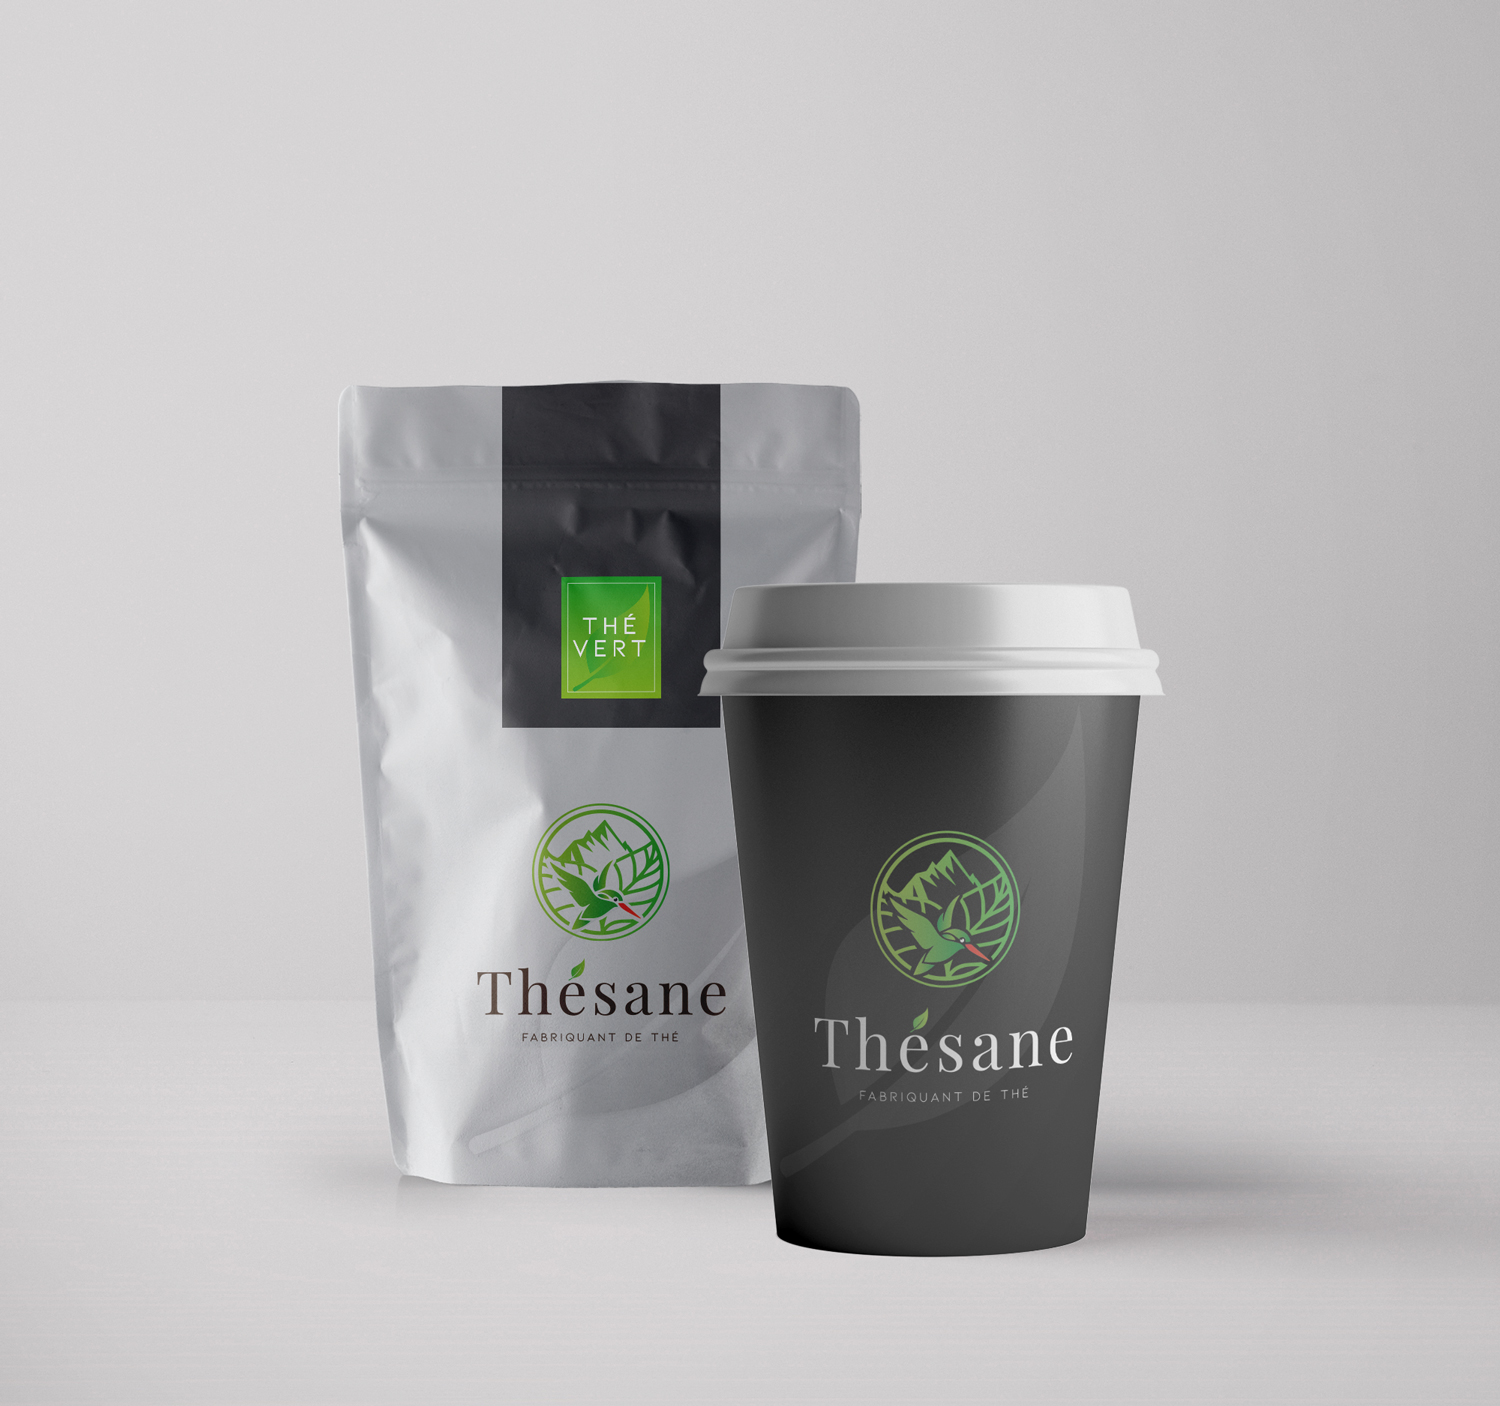 packaging thesane the vert